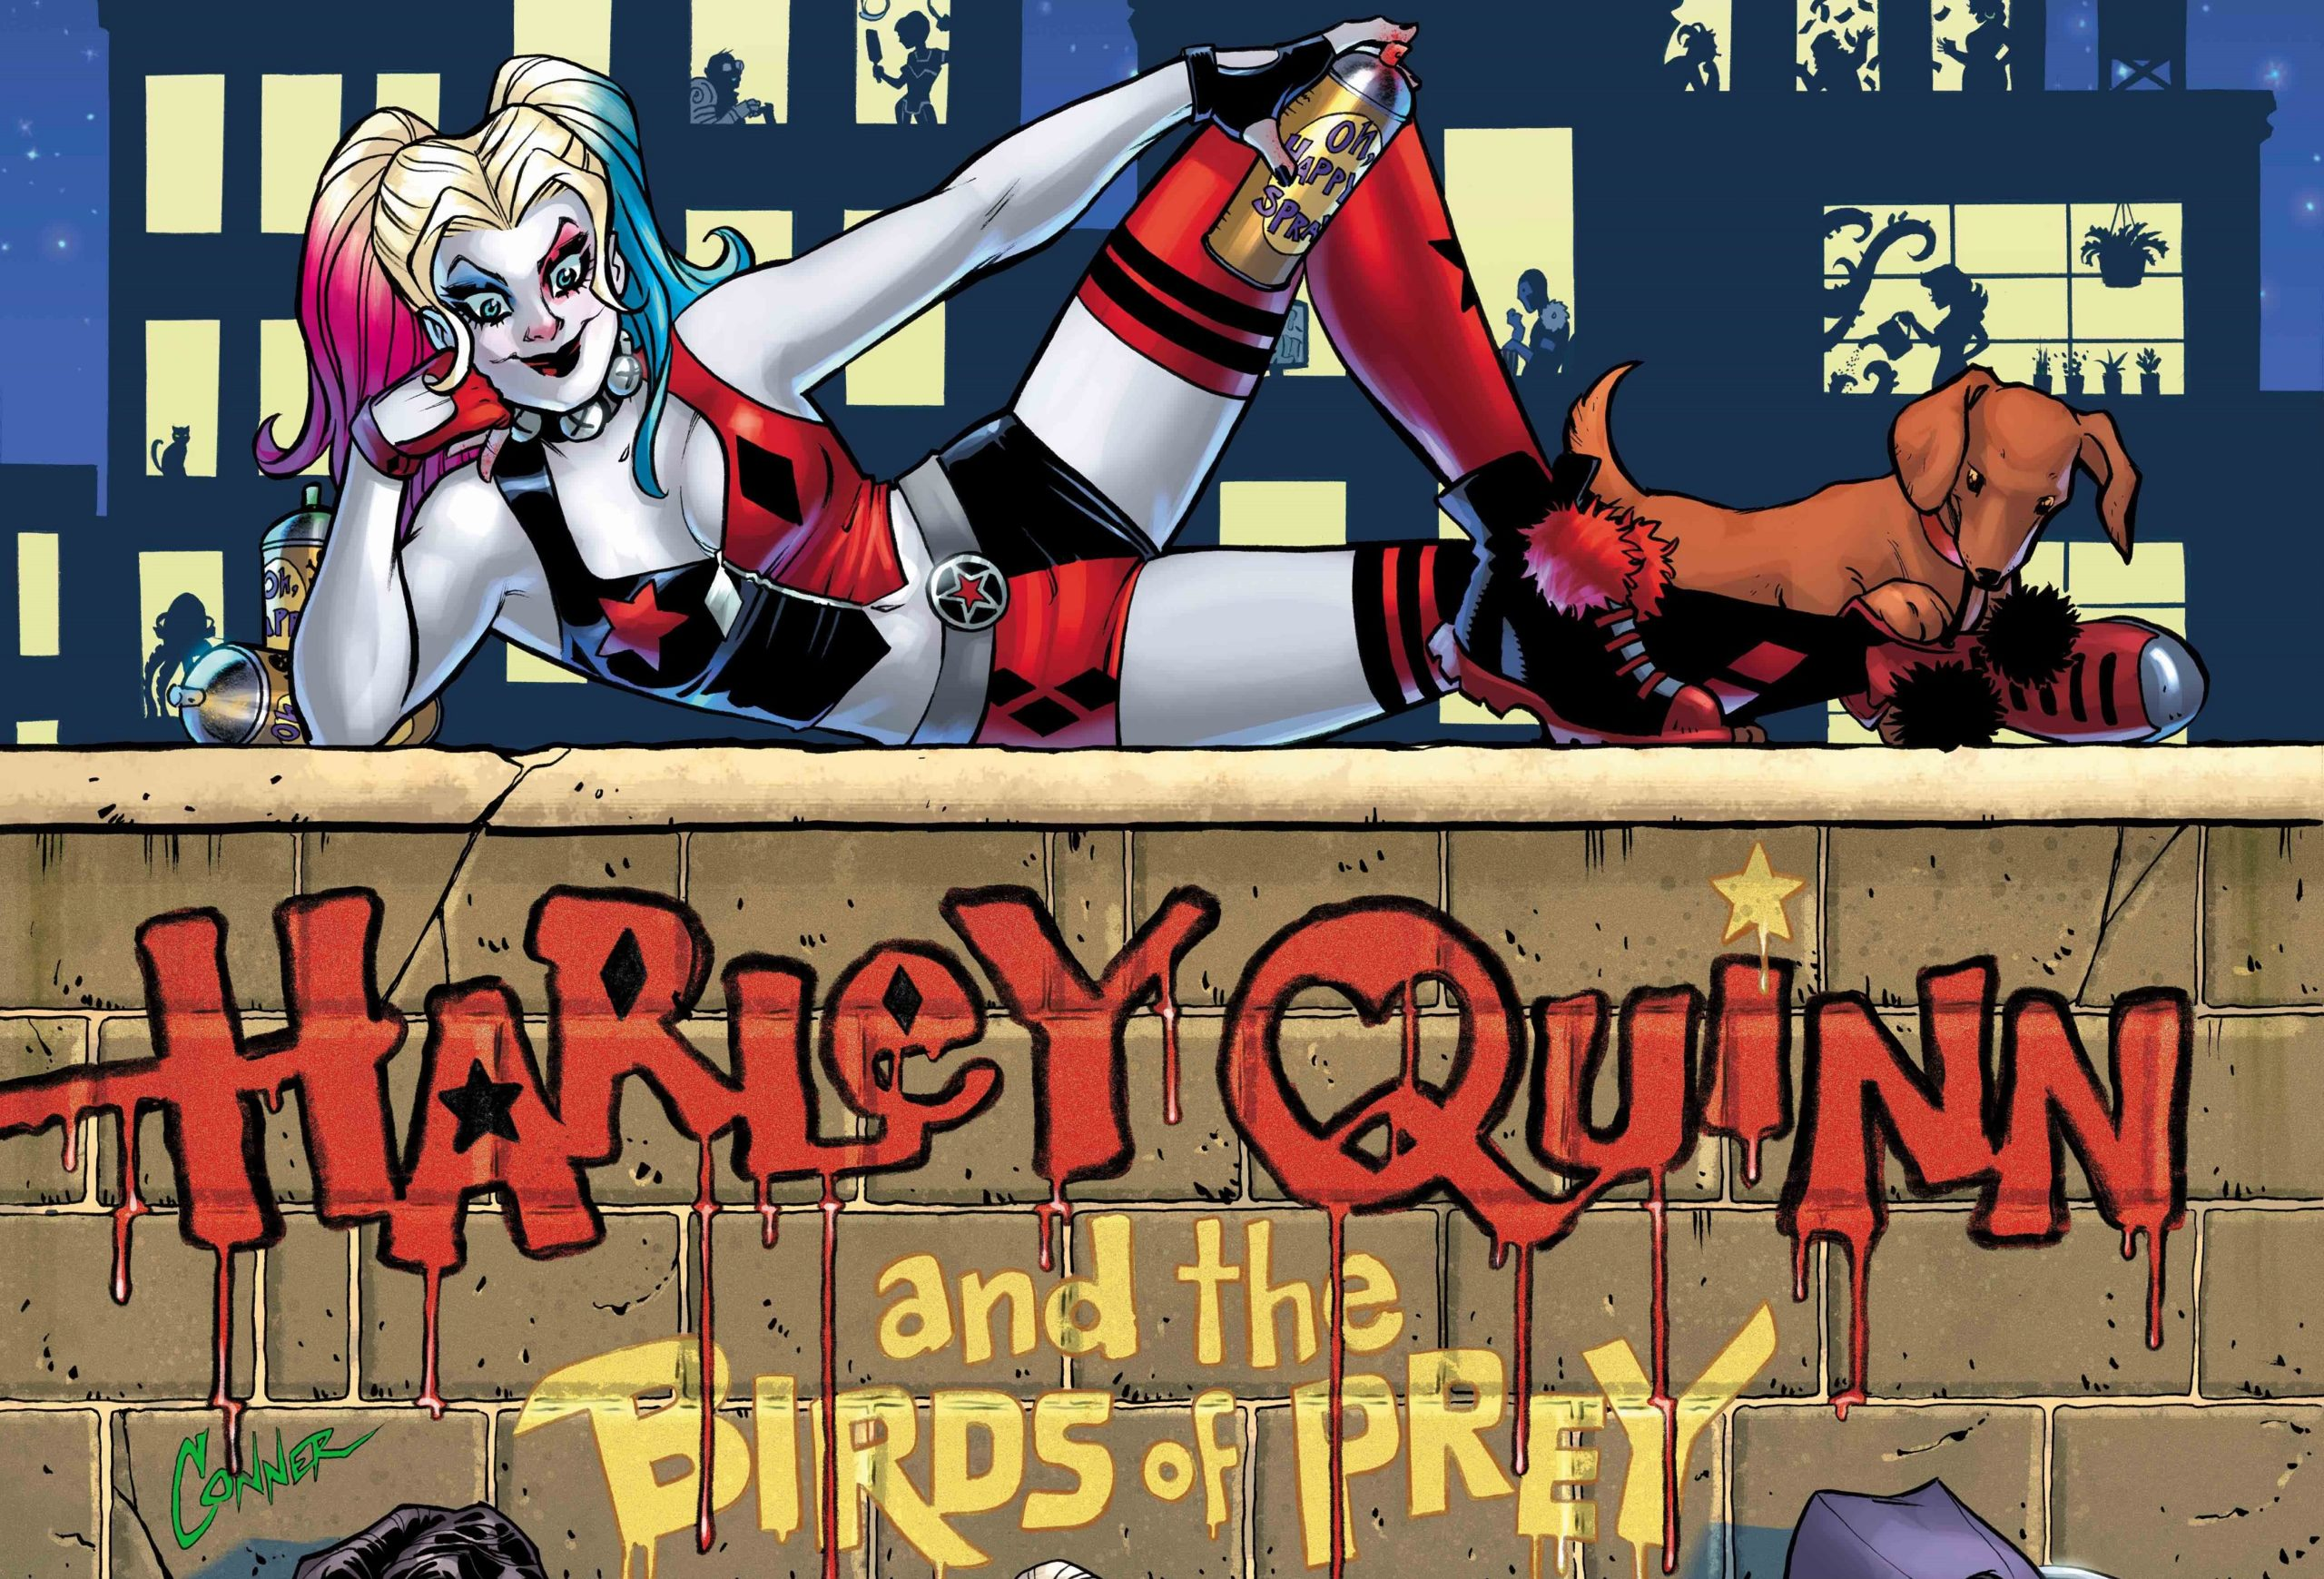 Harley Quinn And The Birds Of Prey Indulges Character S R Rated Dreams Den Of Geek